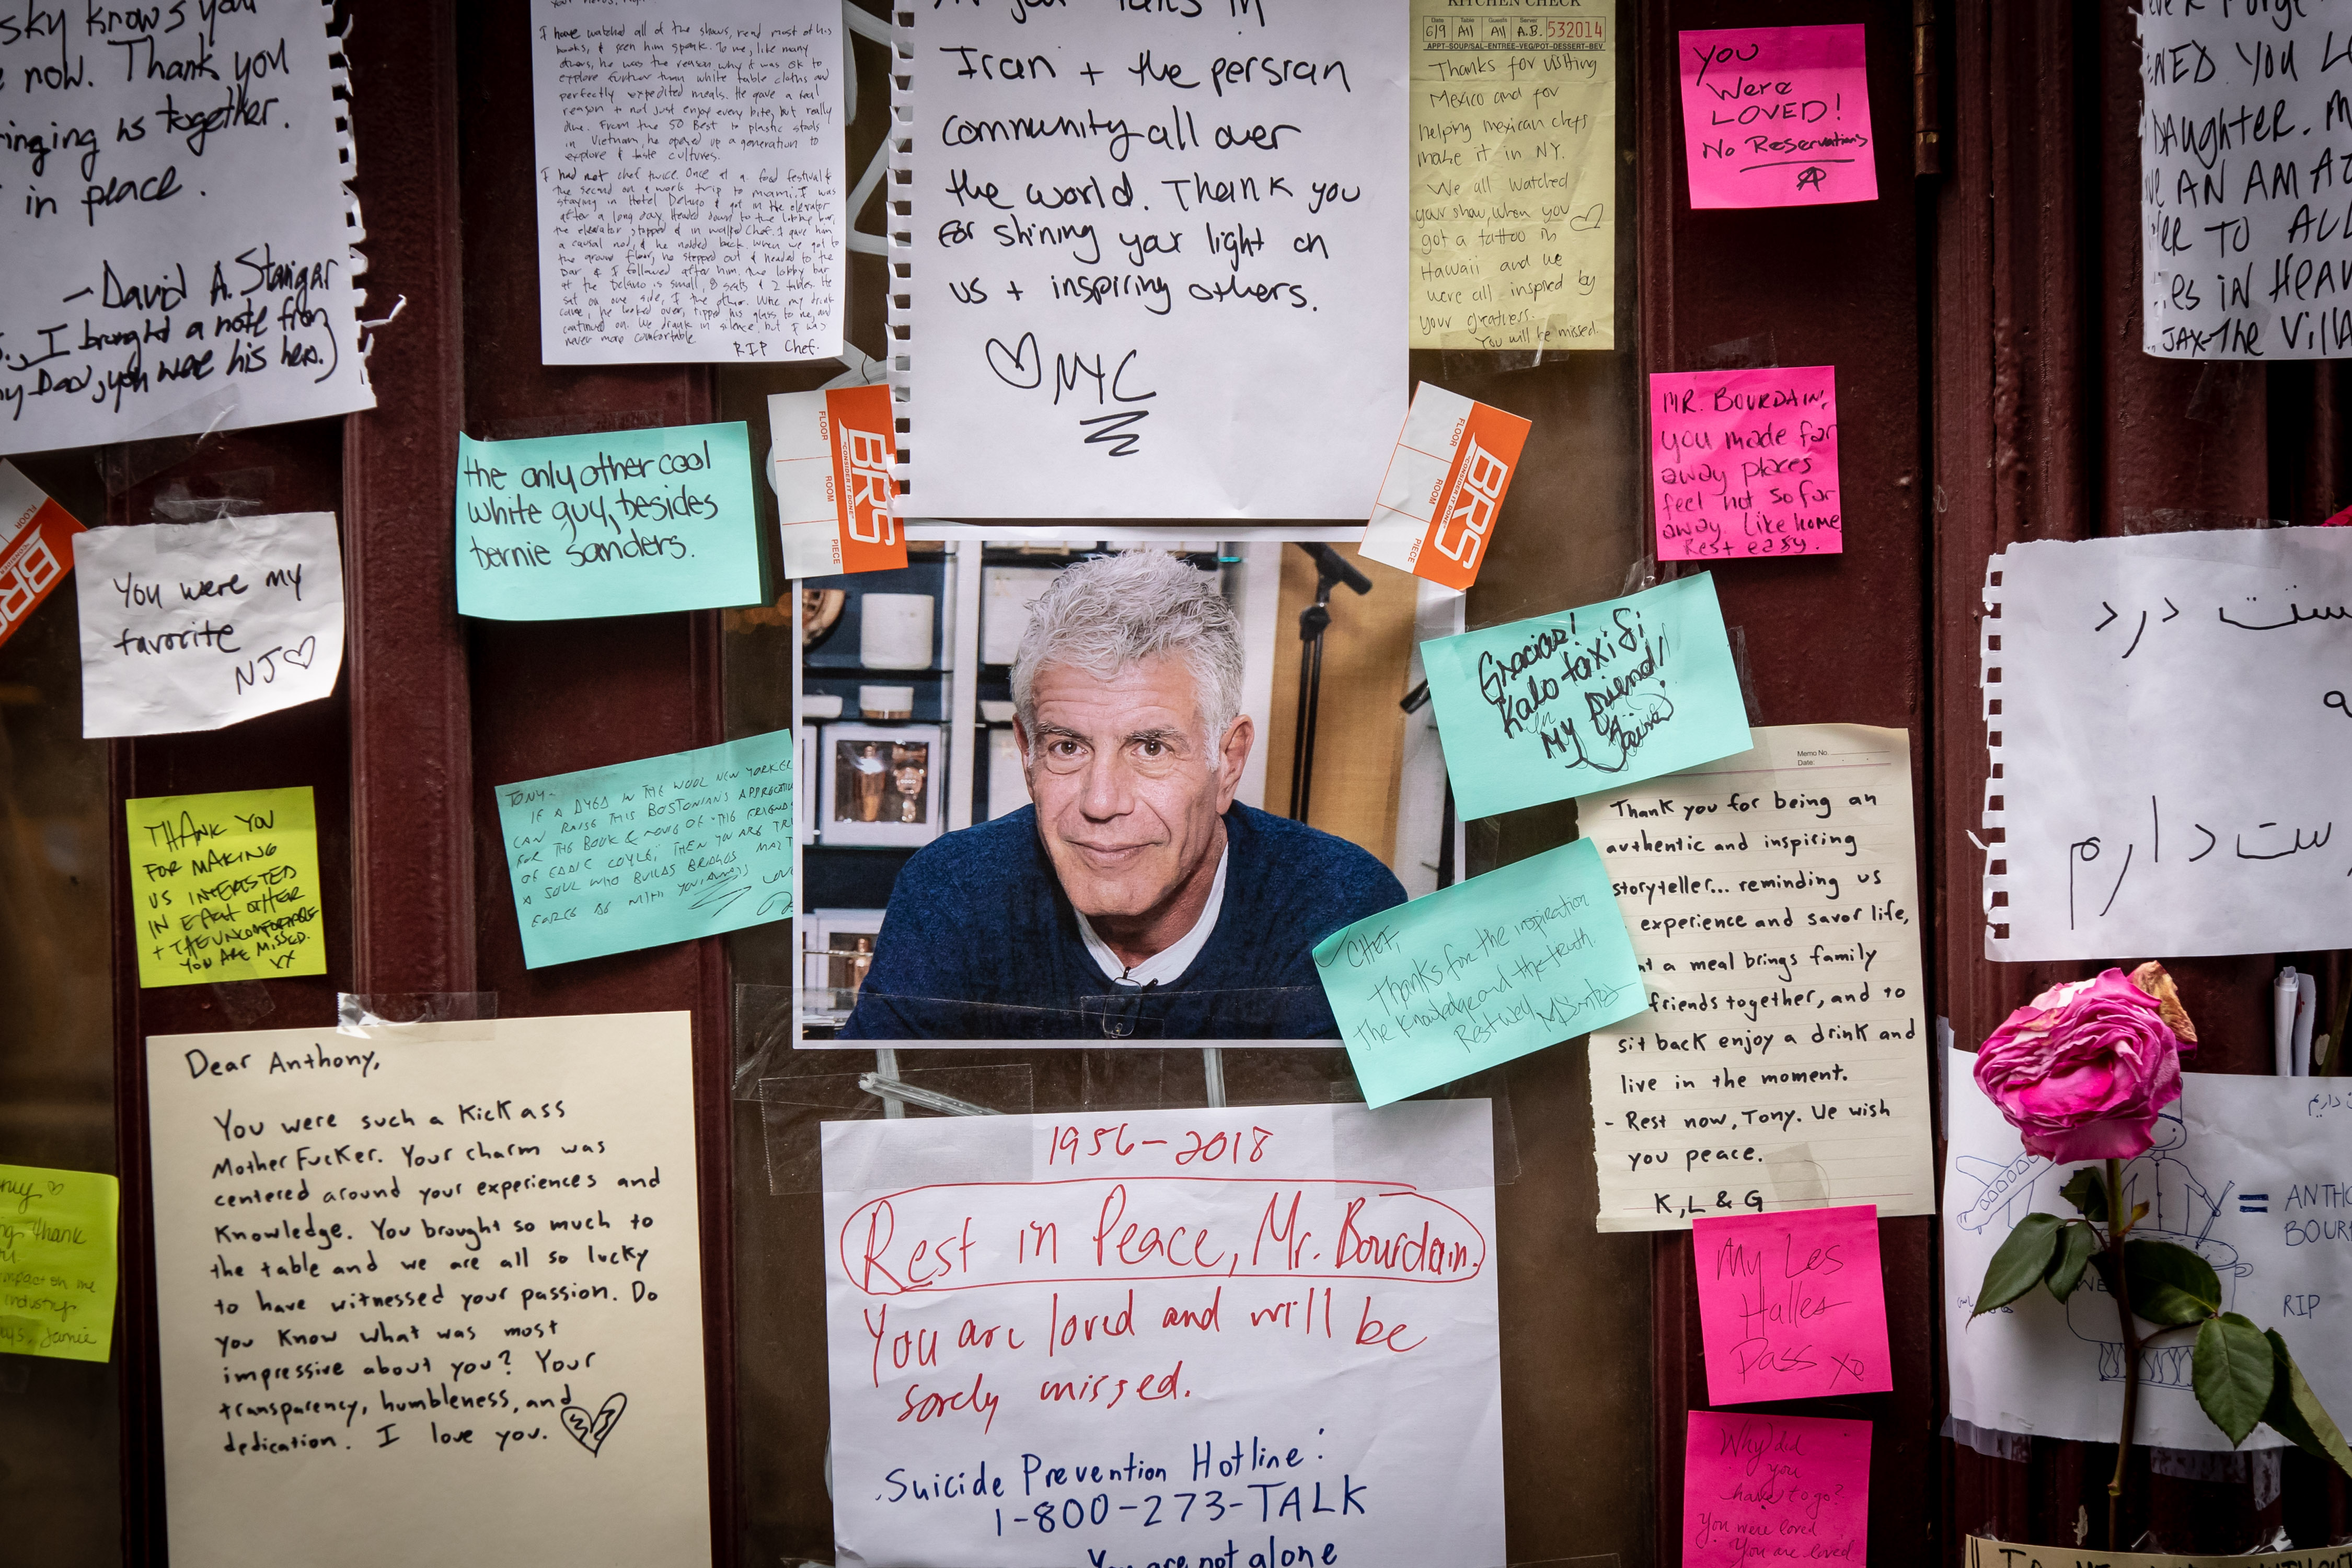 The Anthony Bourdain memorial at Les Halles